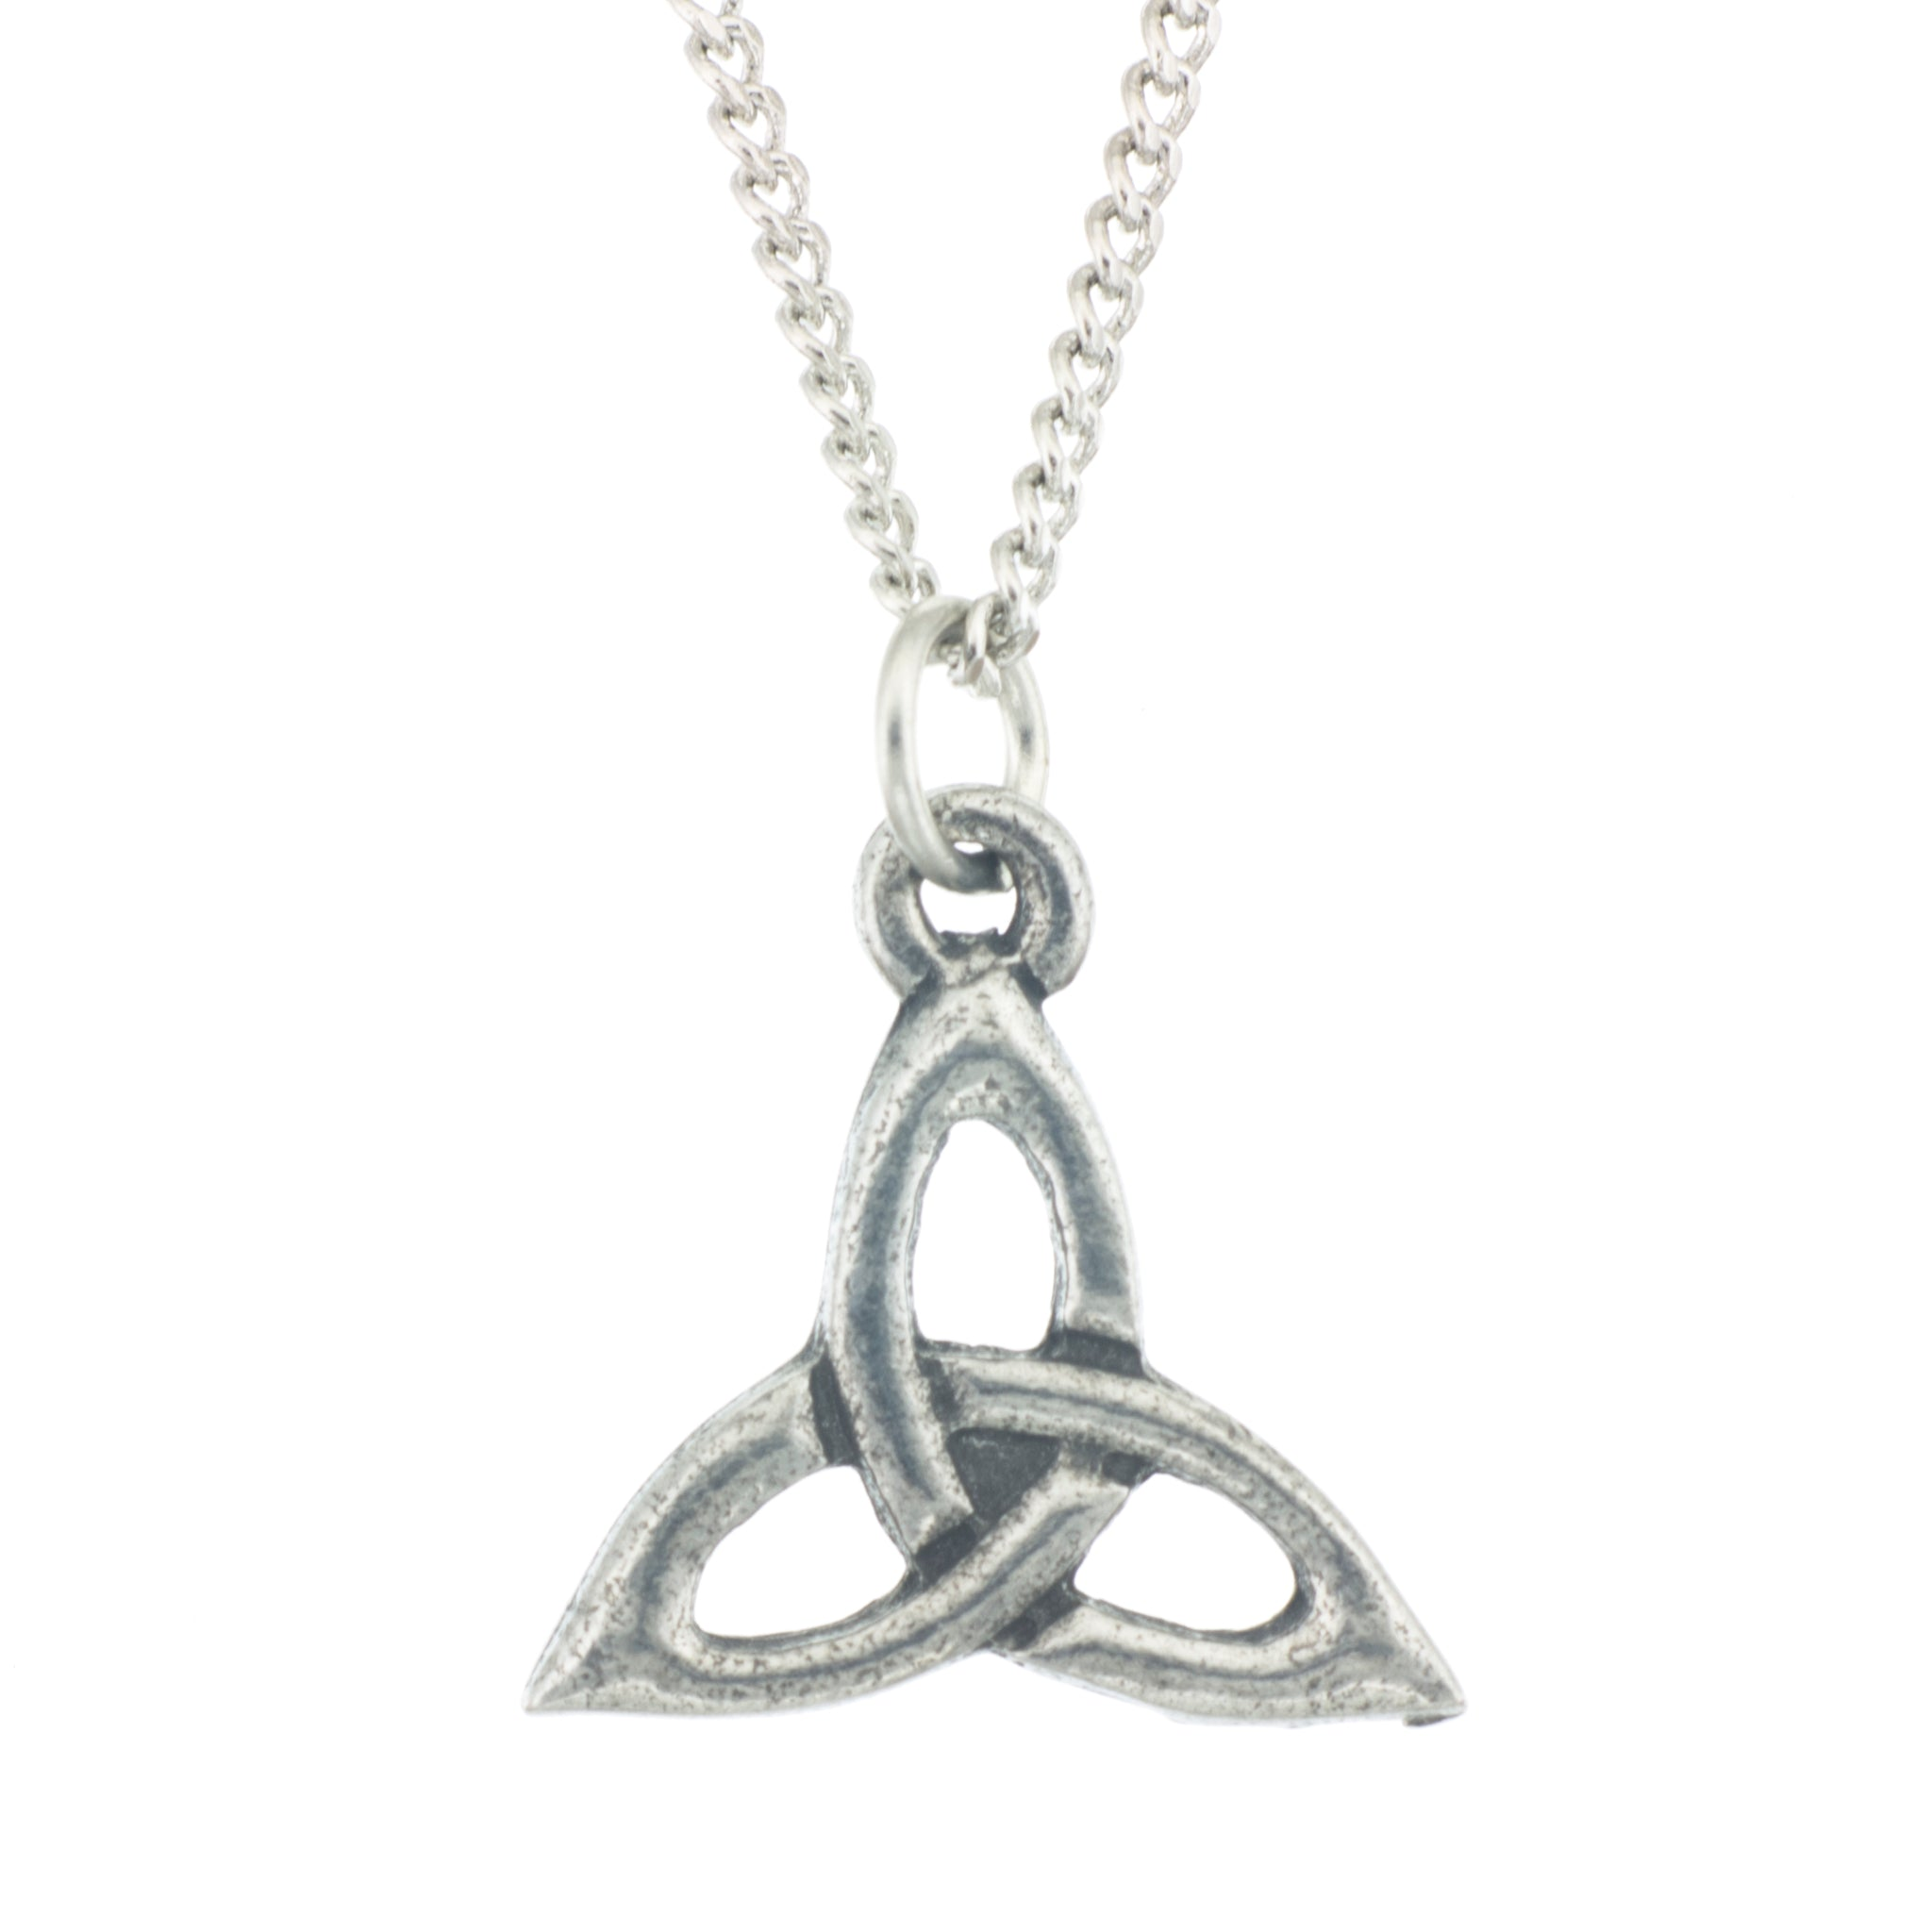 Trinity knot pendant aitkens pewter trinity pendant celtic made from pewter necklace made in fredericton nb new aloadofball Image collections